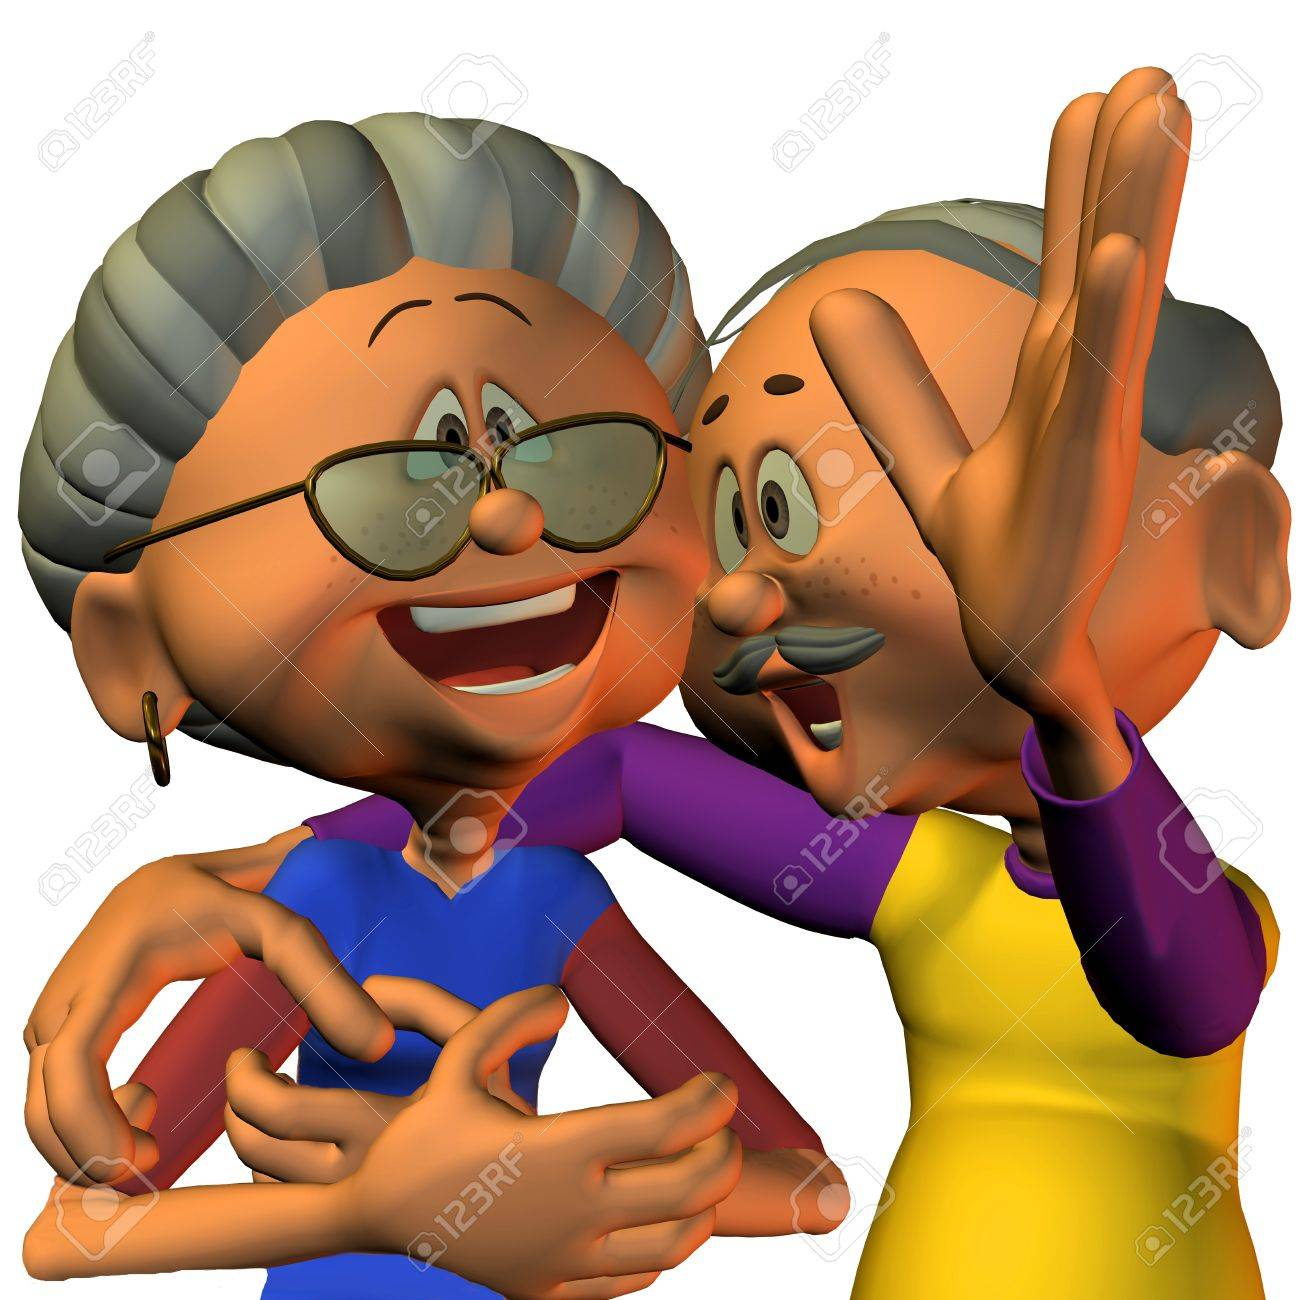 3d Rendering Of A Senior Citizen Couple Laugh As The Illustration ...